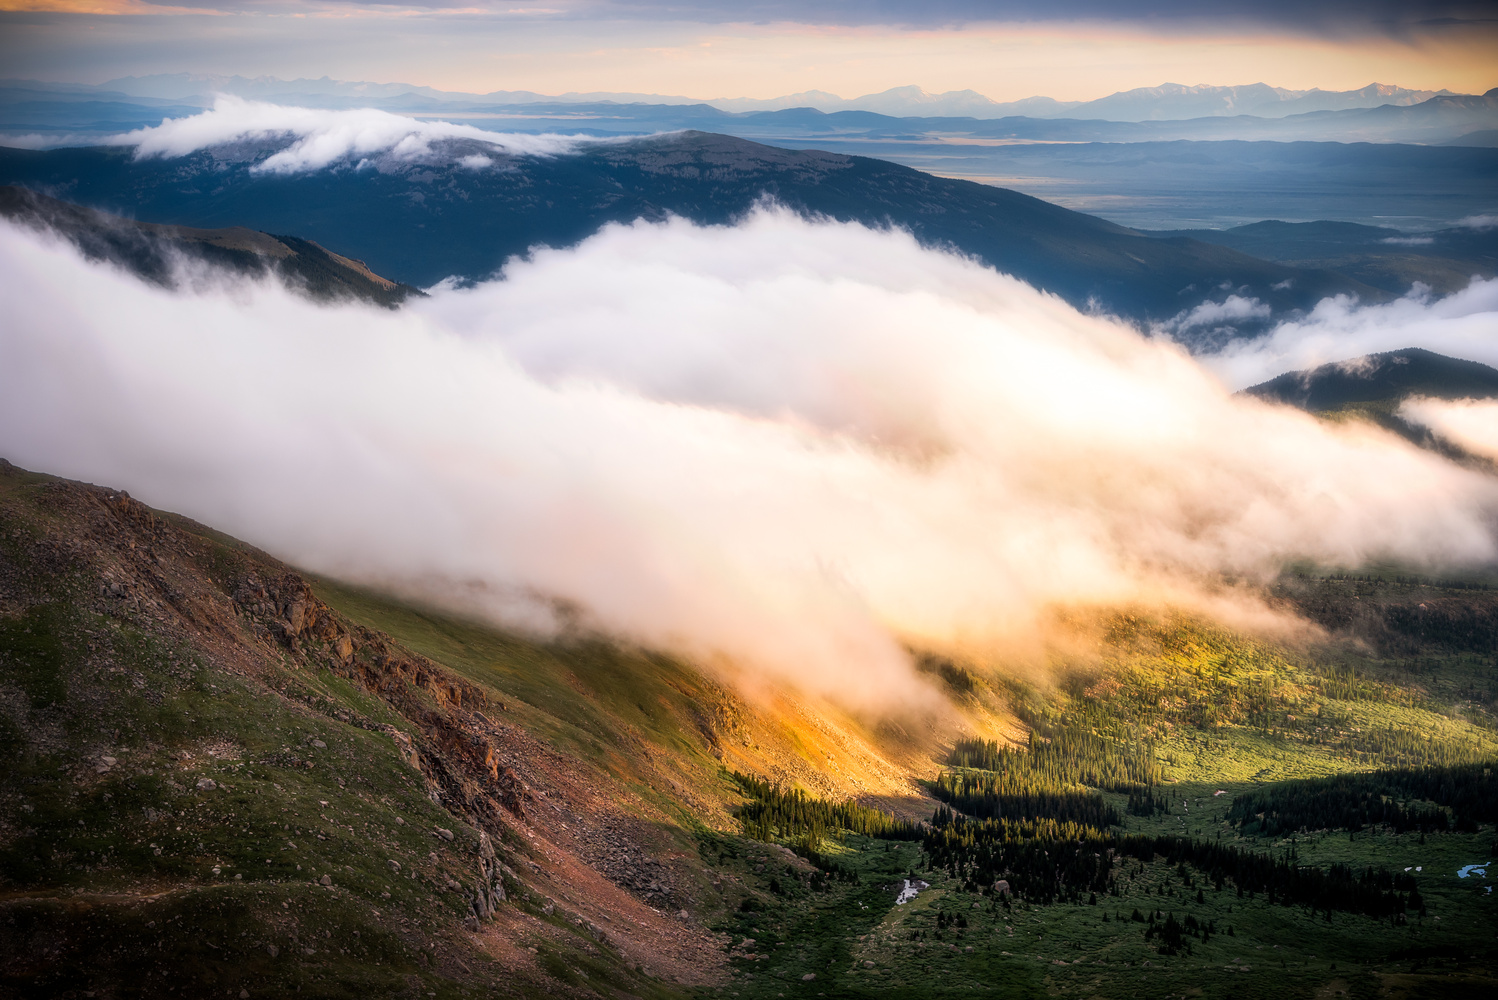 Above the clouds by Korey Shumway